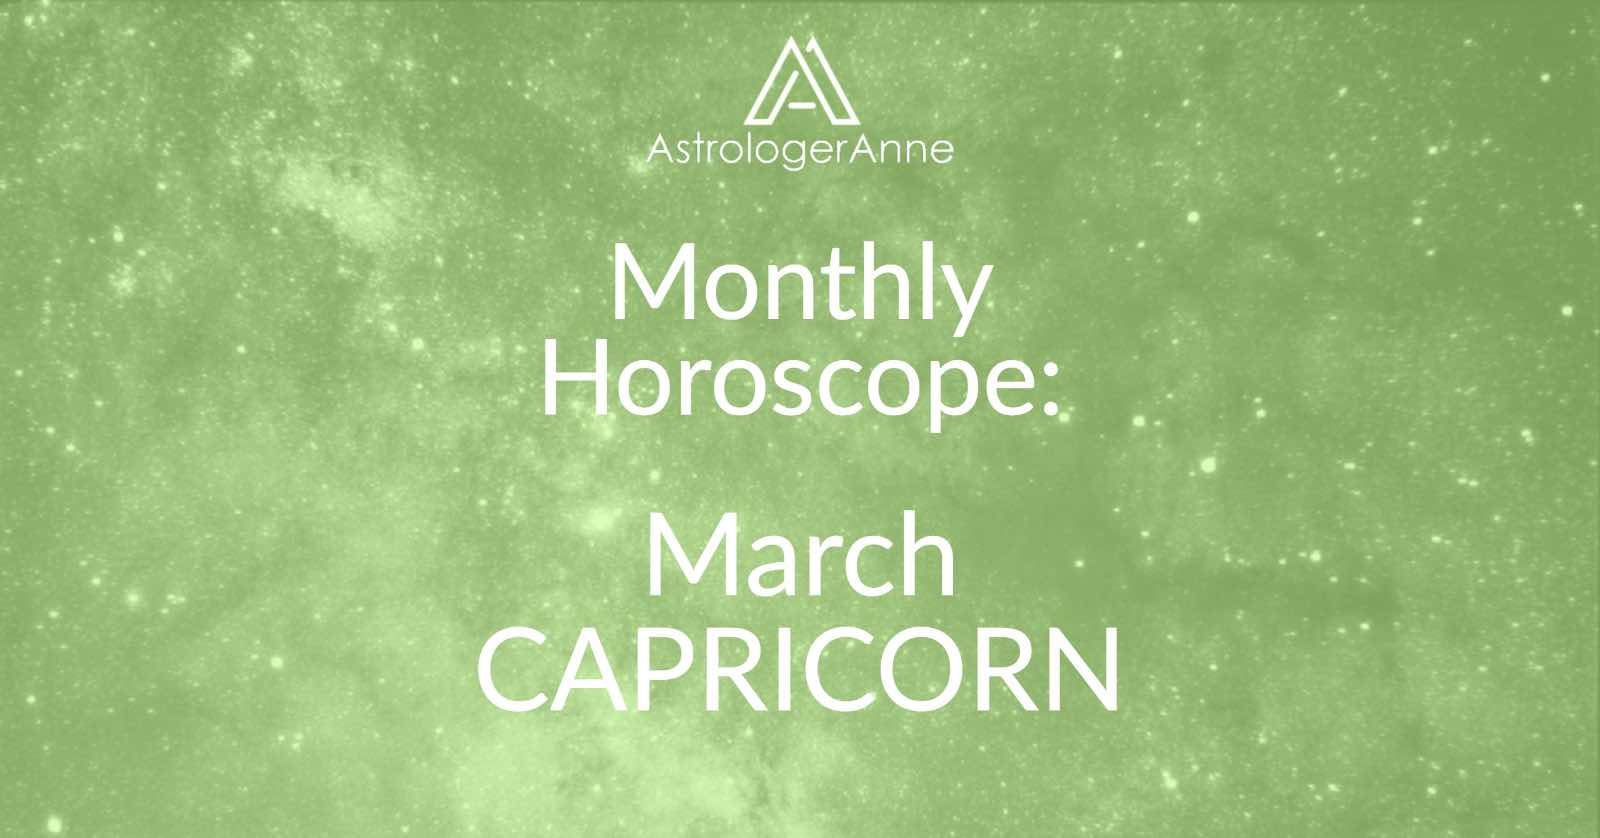 Your Capricorn Monthly Horoscope For March 2019